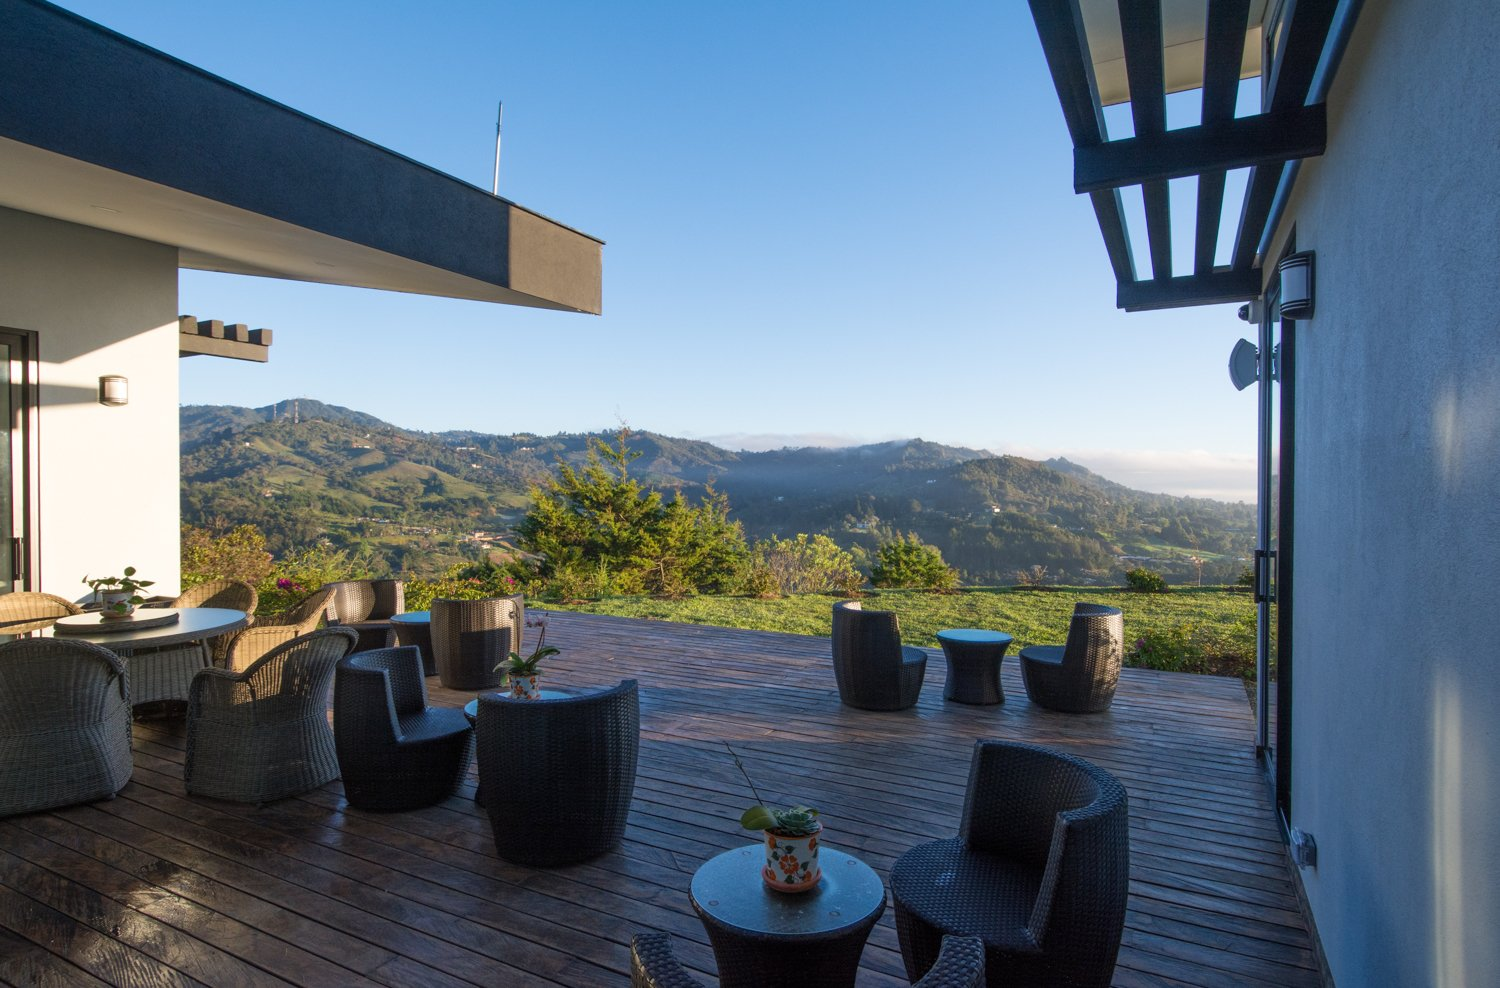 Deck with outdoor kitchen and fabulous views  House in Medellin by evoDOMUS LLC